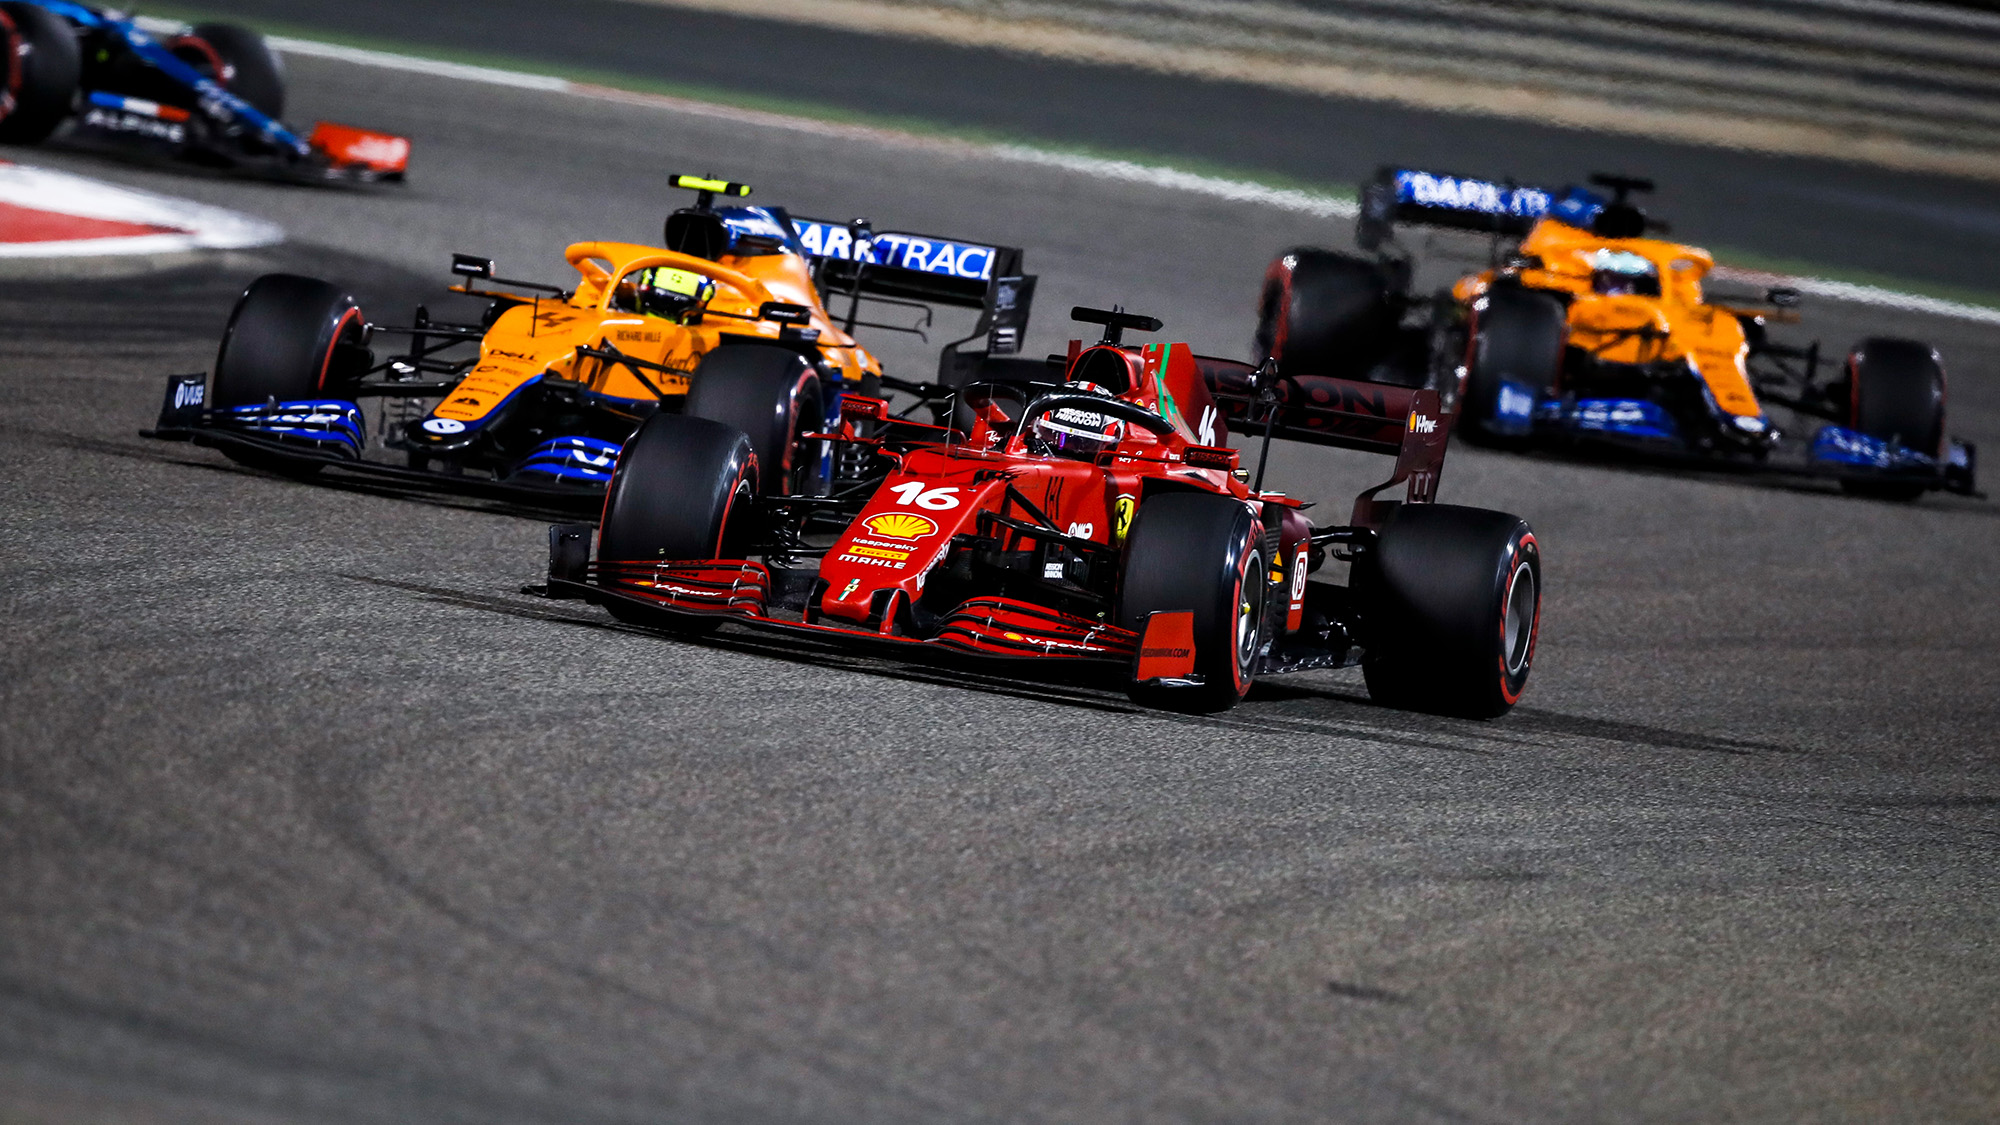 Charles Leclerc and Lando Norris in the 2021 Bahrain Grand Prix